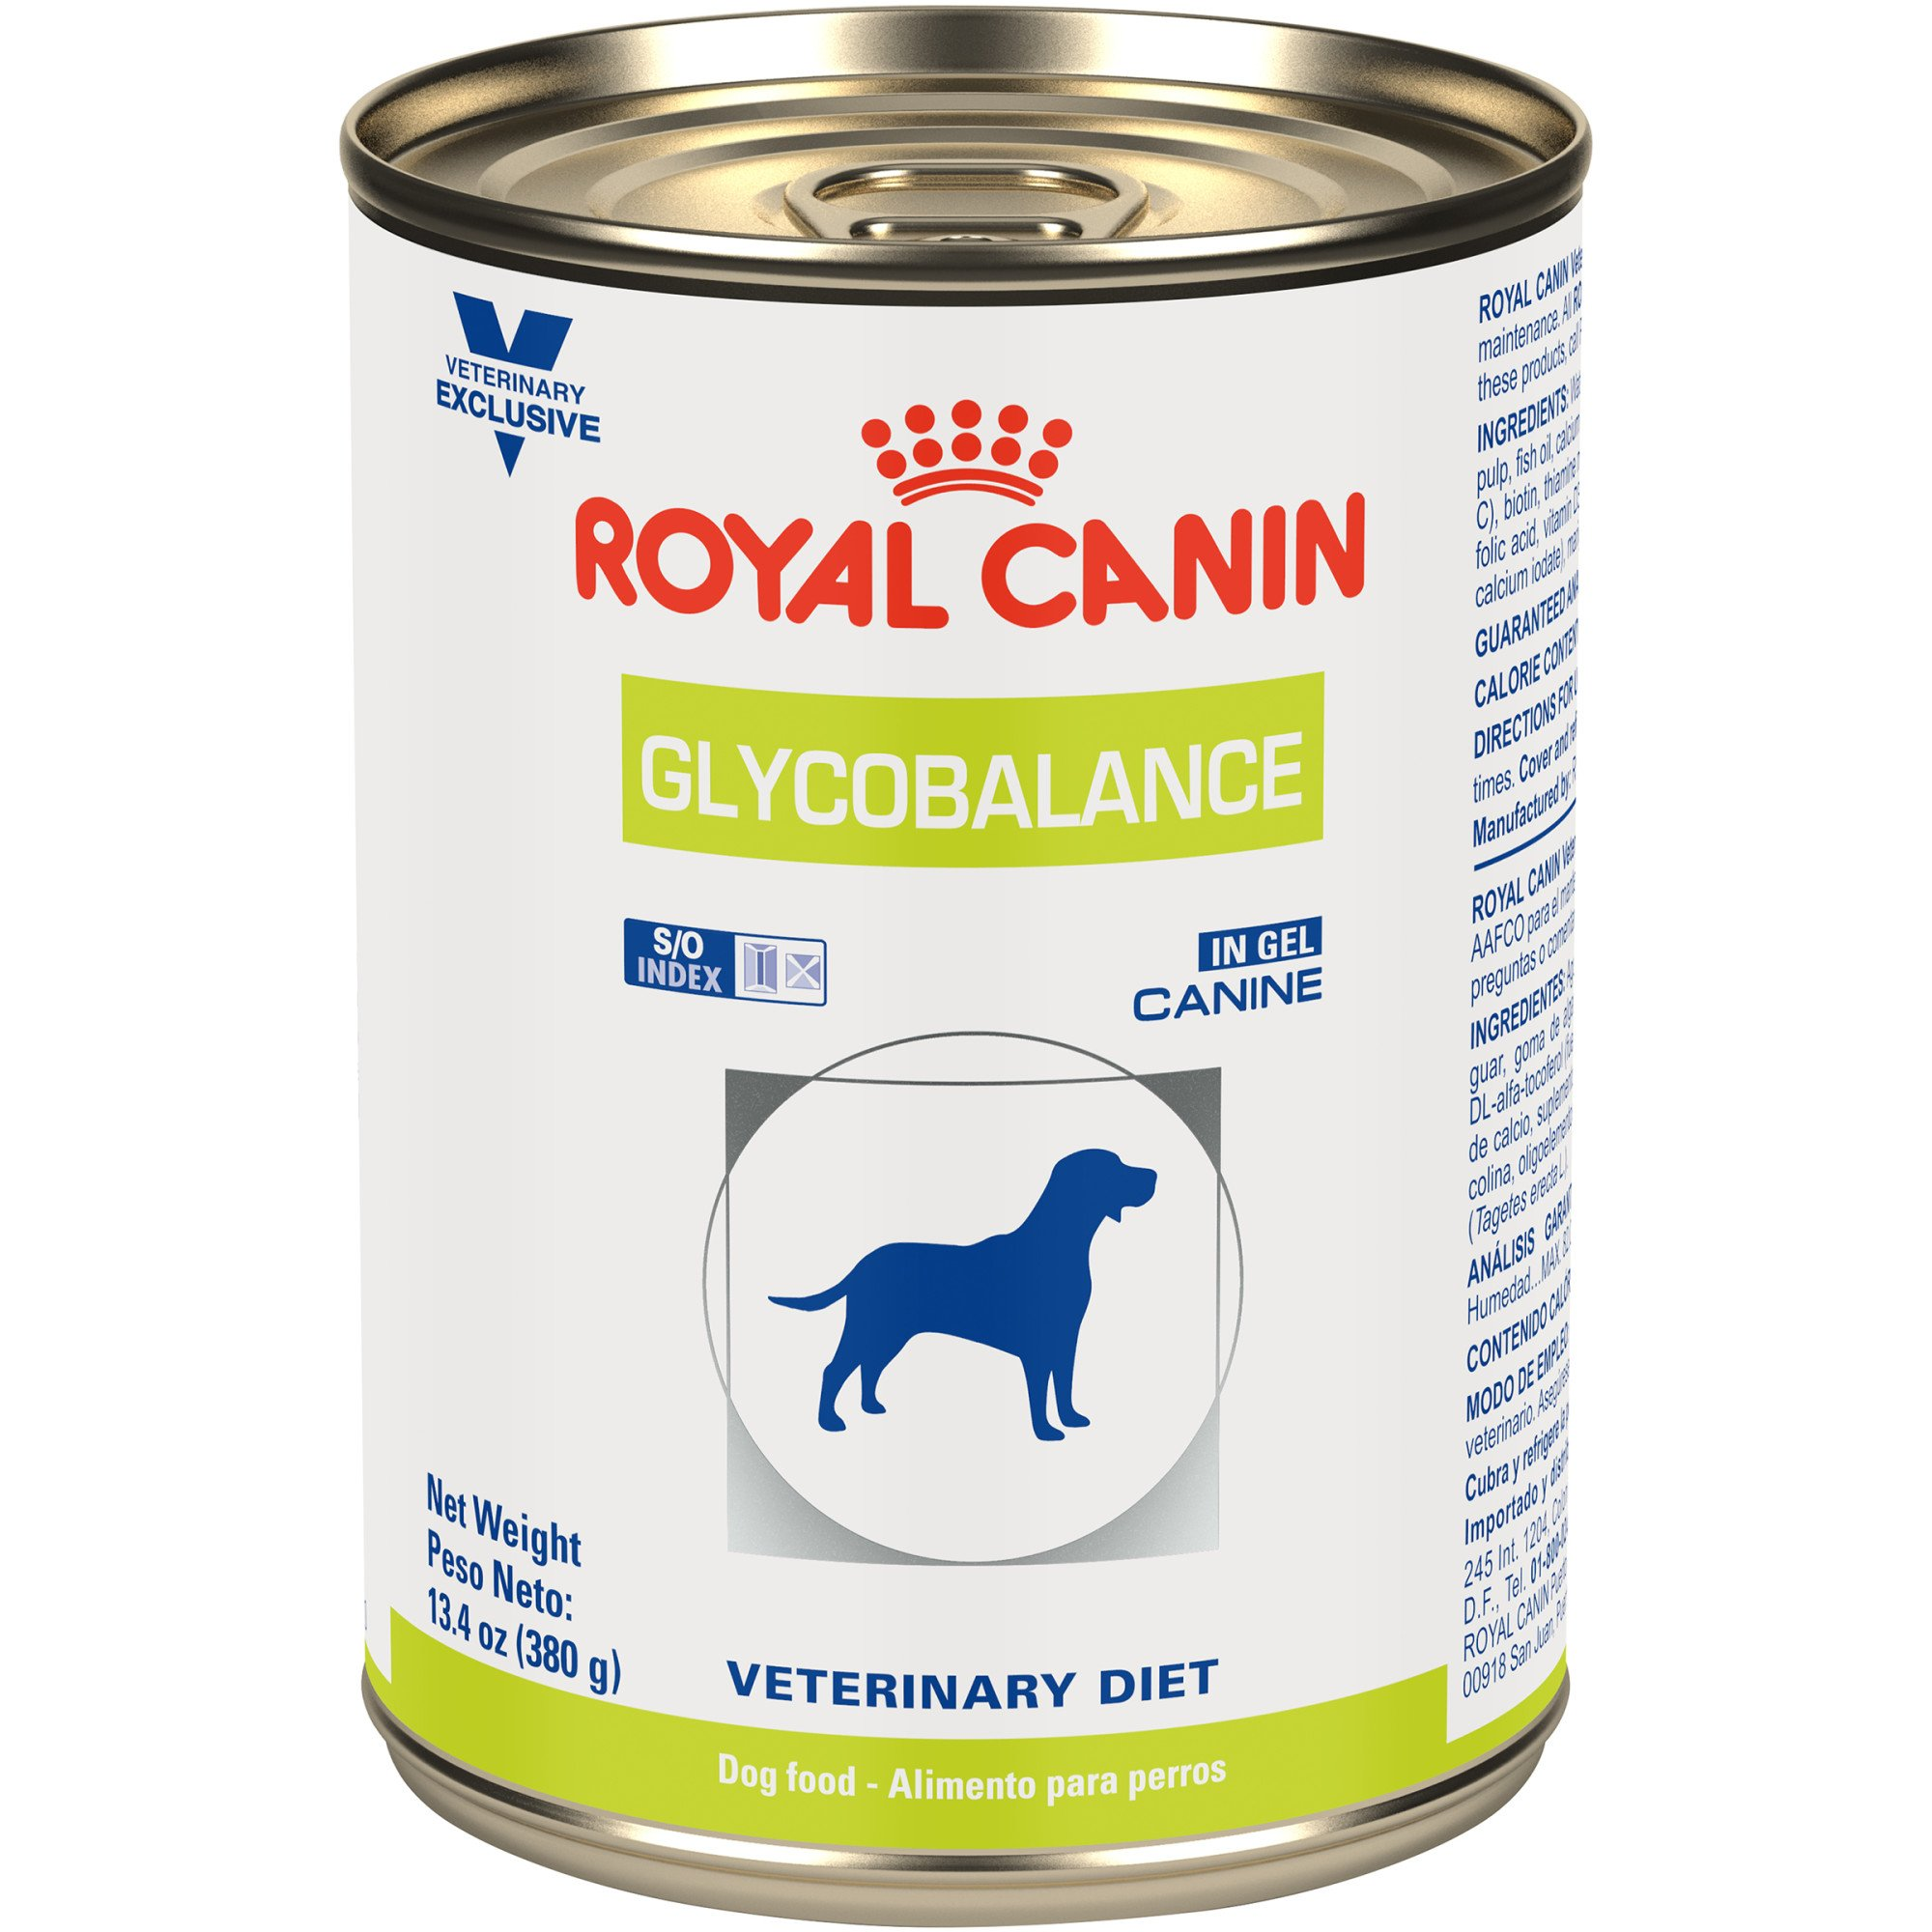 royal canin veterinary diet canine glycobalance in gel wet dog food petco. Black Bedroom Furniture Sets. Home Design Ideas